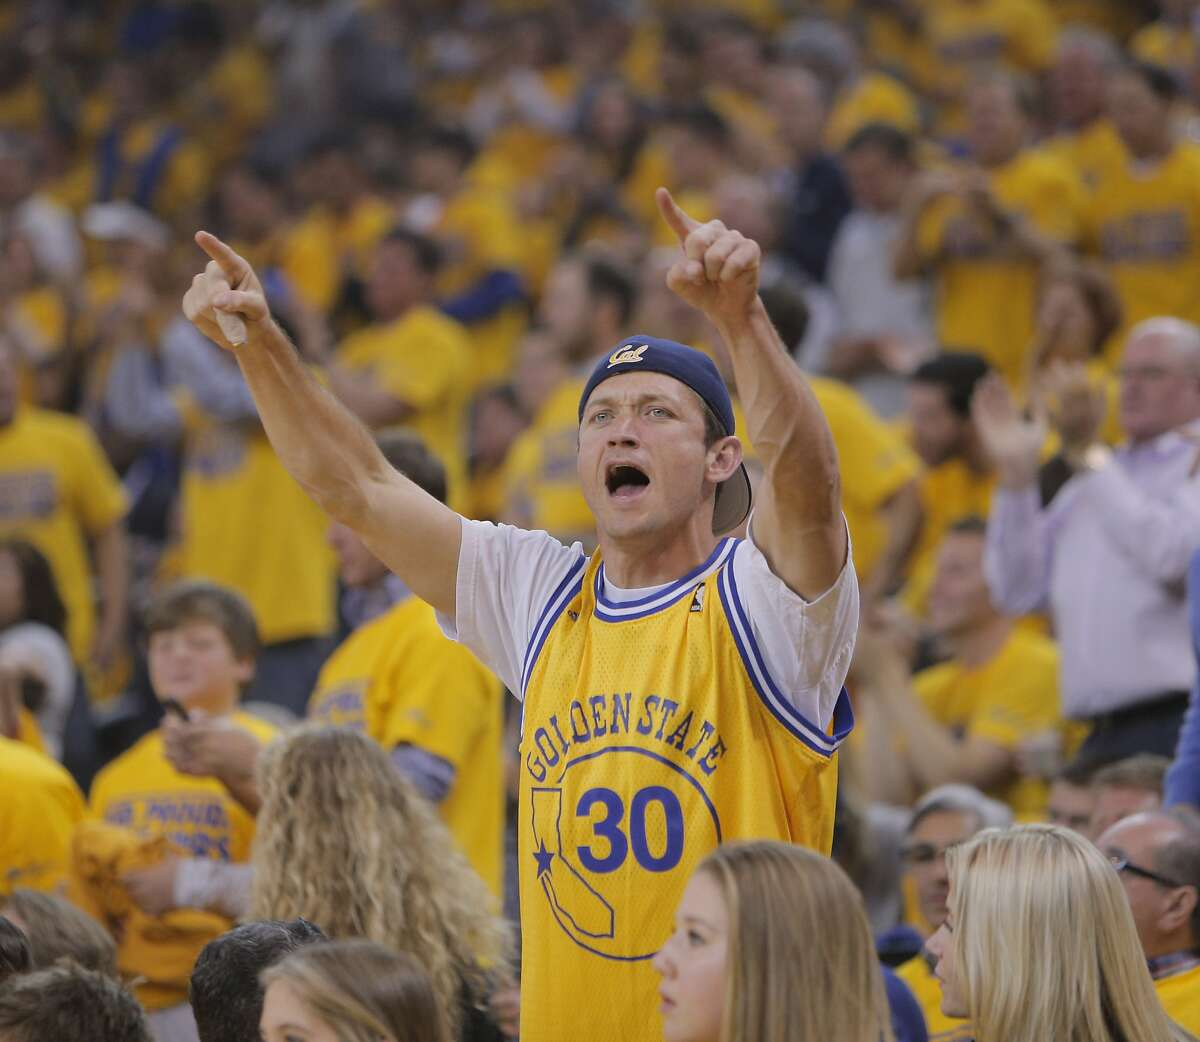 A Warriors fan reacts to a made shot by the Warriors in the first half. The Golden State Warriors played the Los Angeles Clippers at Oracle Arena in Oakland, Calif., on Thursday, April 24, 2014, in Game 3 of the first-round playoff series.